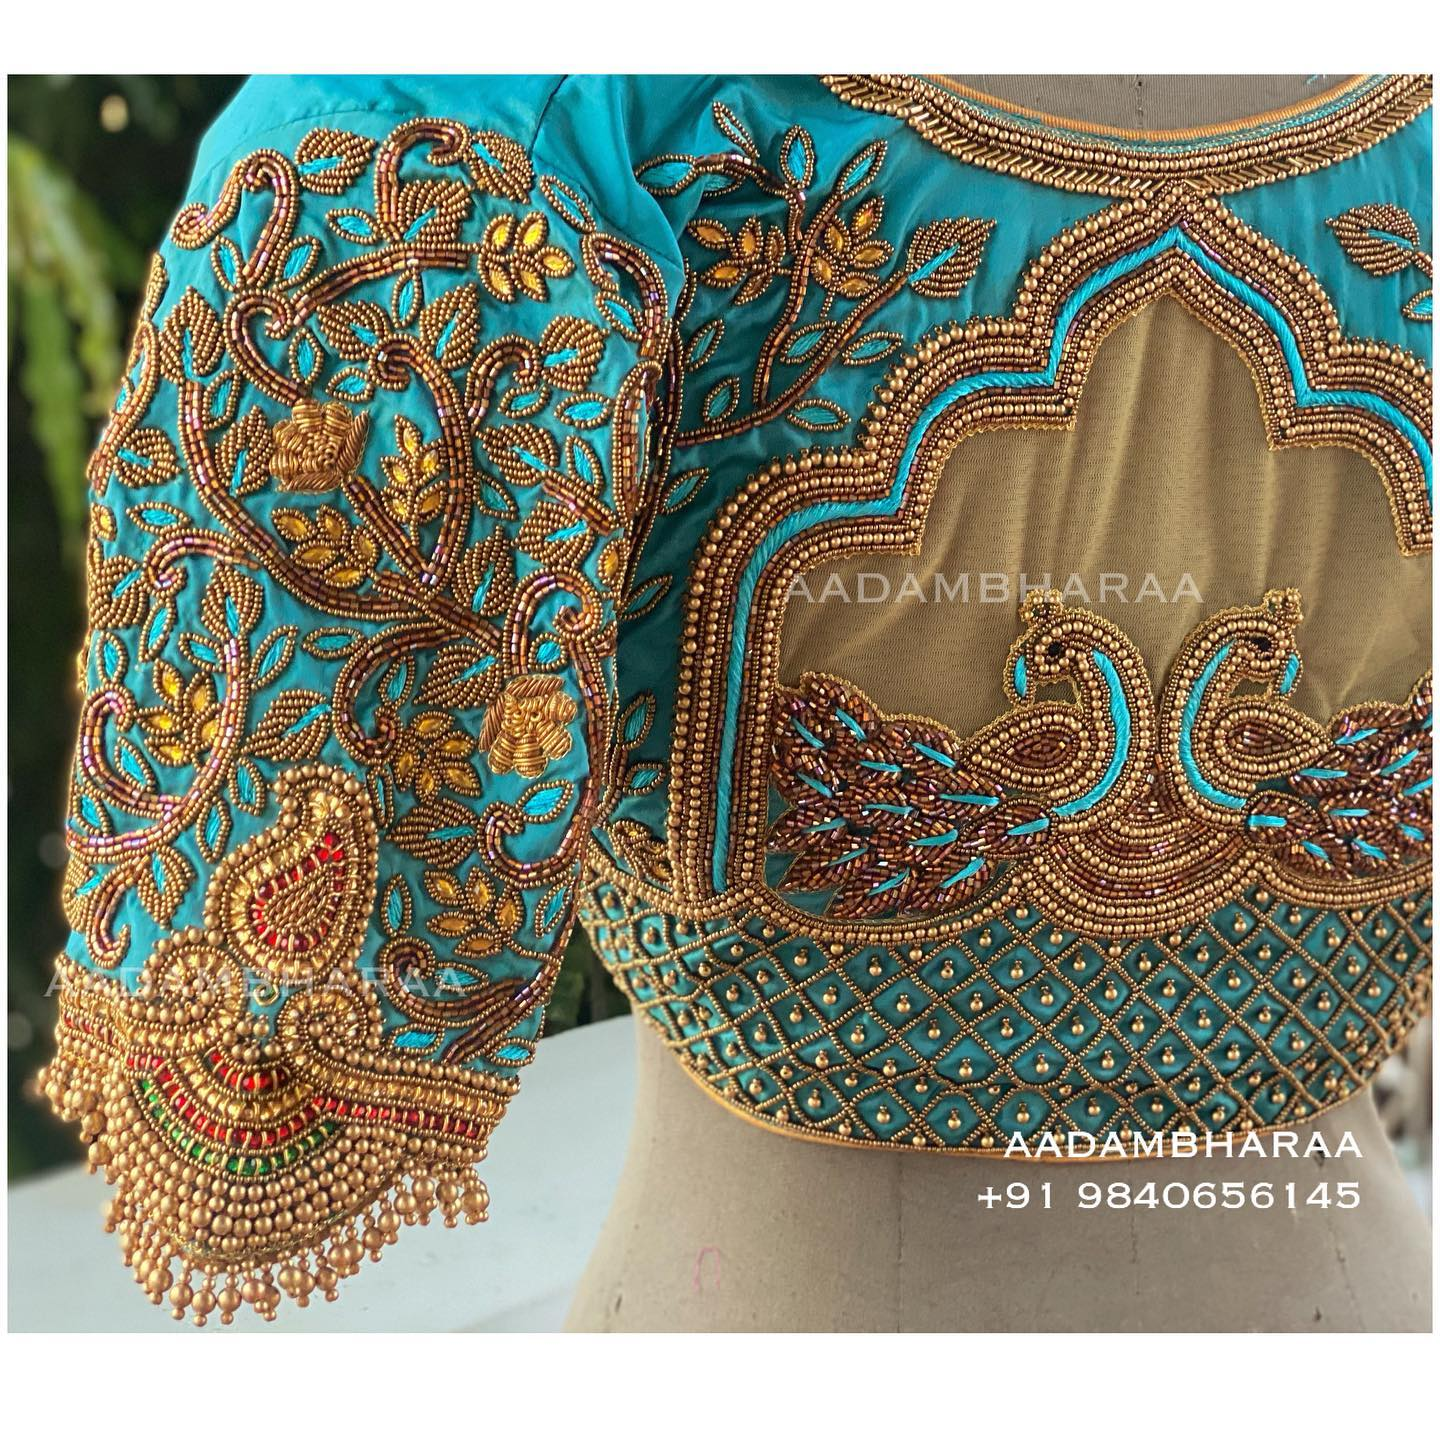 Shades of Blue. Stunning powder blue color blouse with peacock and floral bead aari work. 2021-08-29